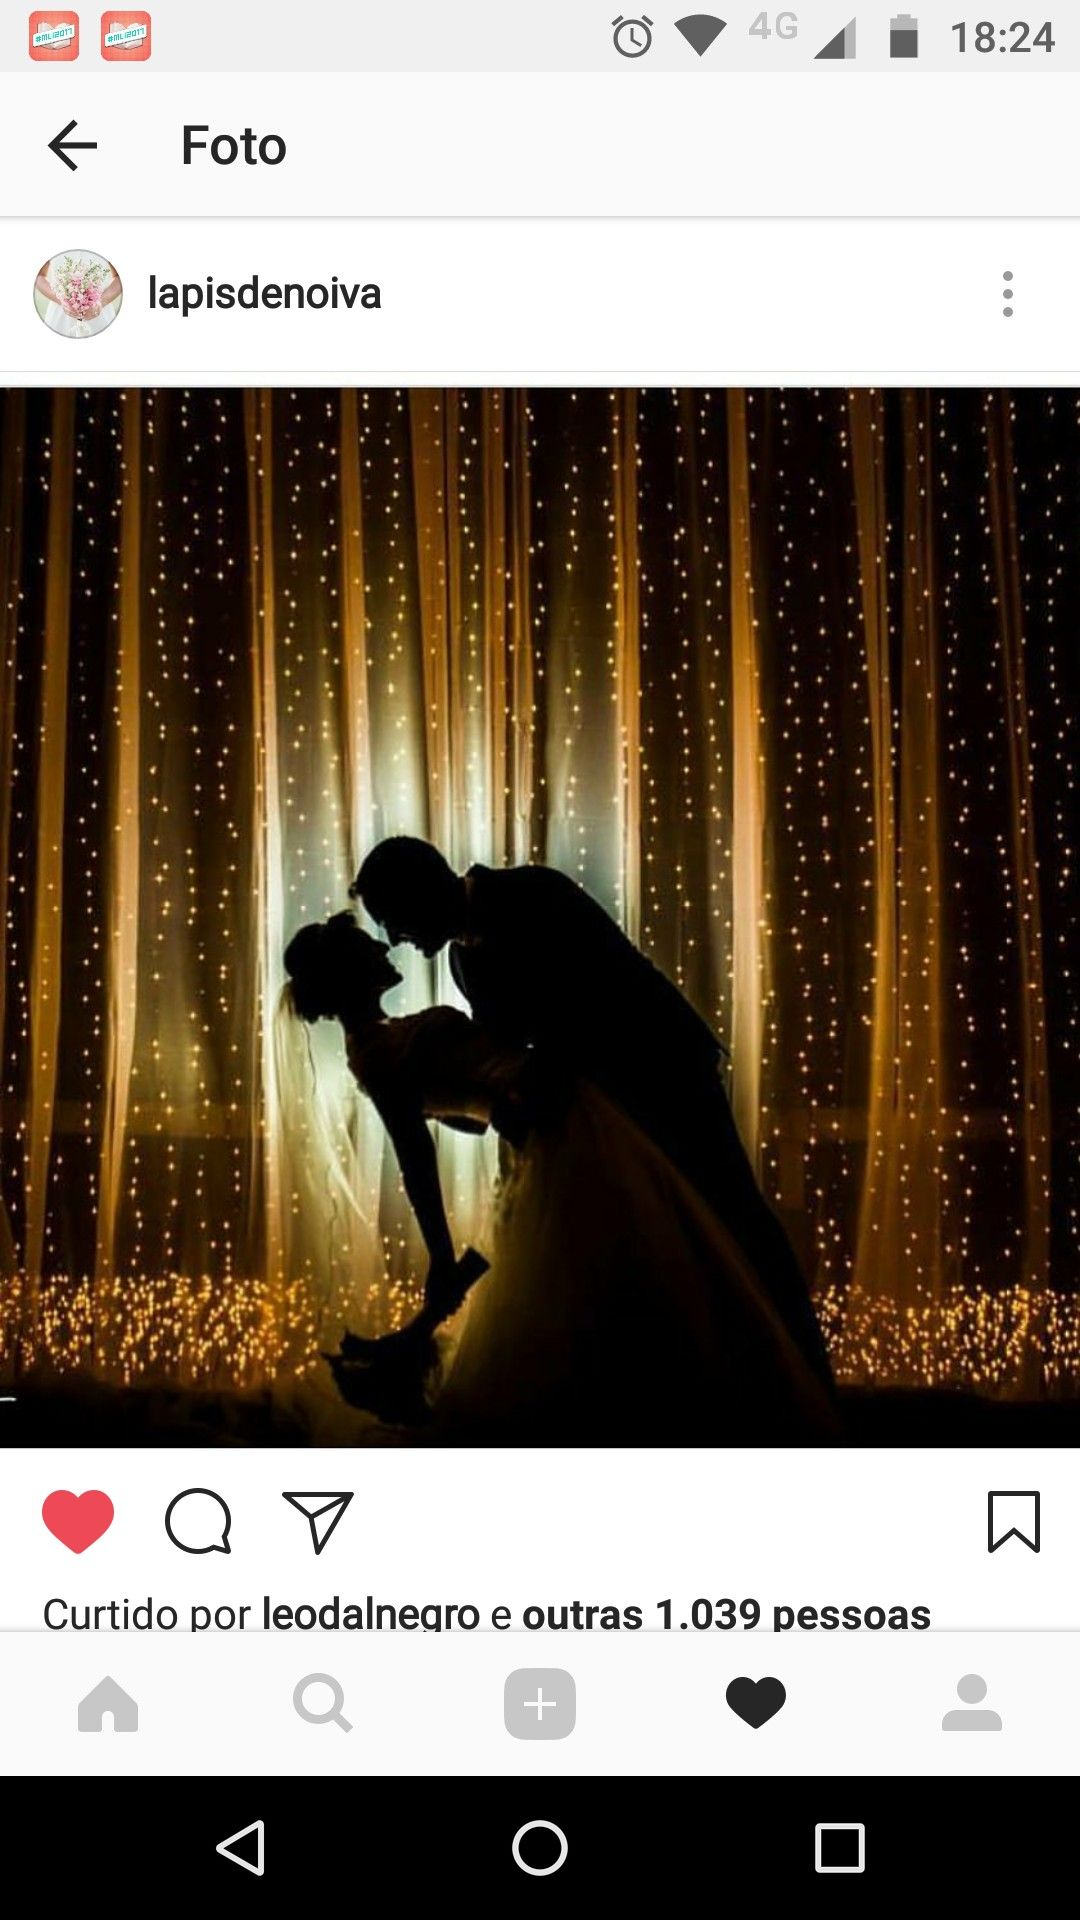 Wedding decorations stage backdrops october 2018 Pin by ericka on wedding ideas in   Pinterest  Wedding Dream